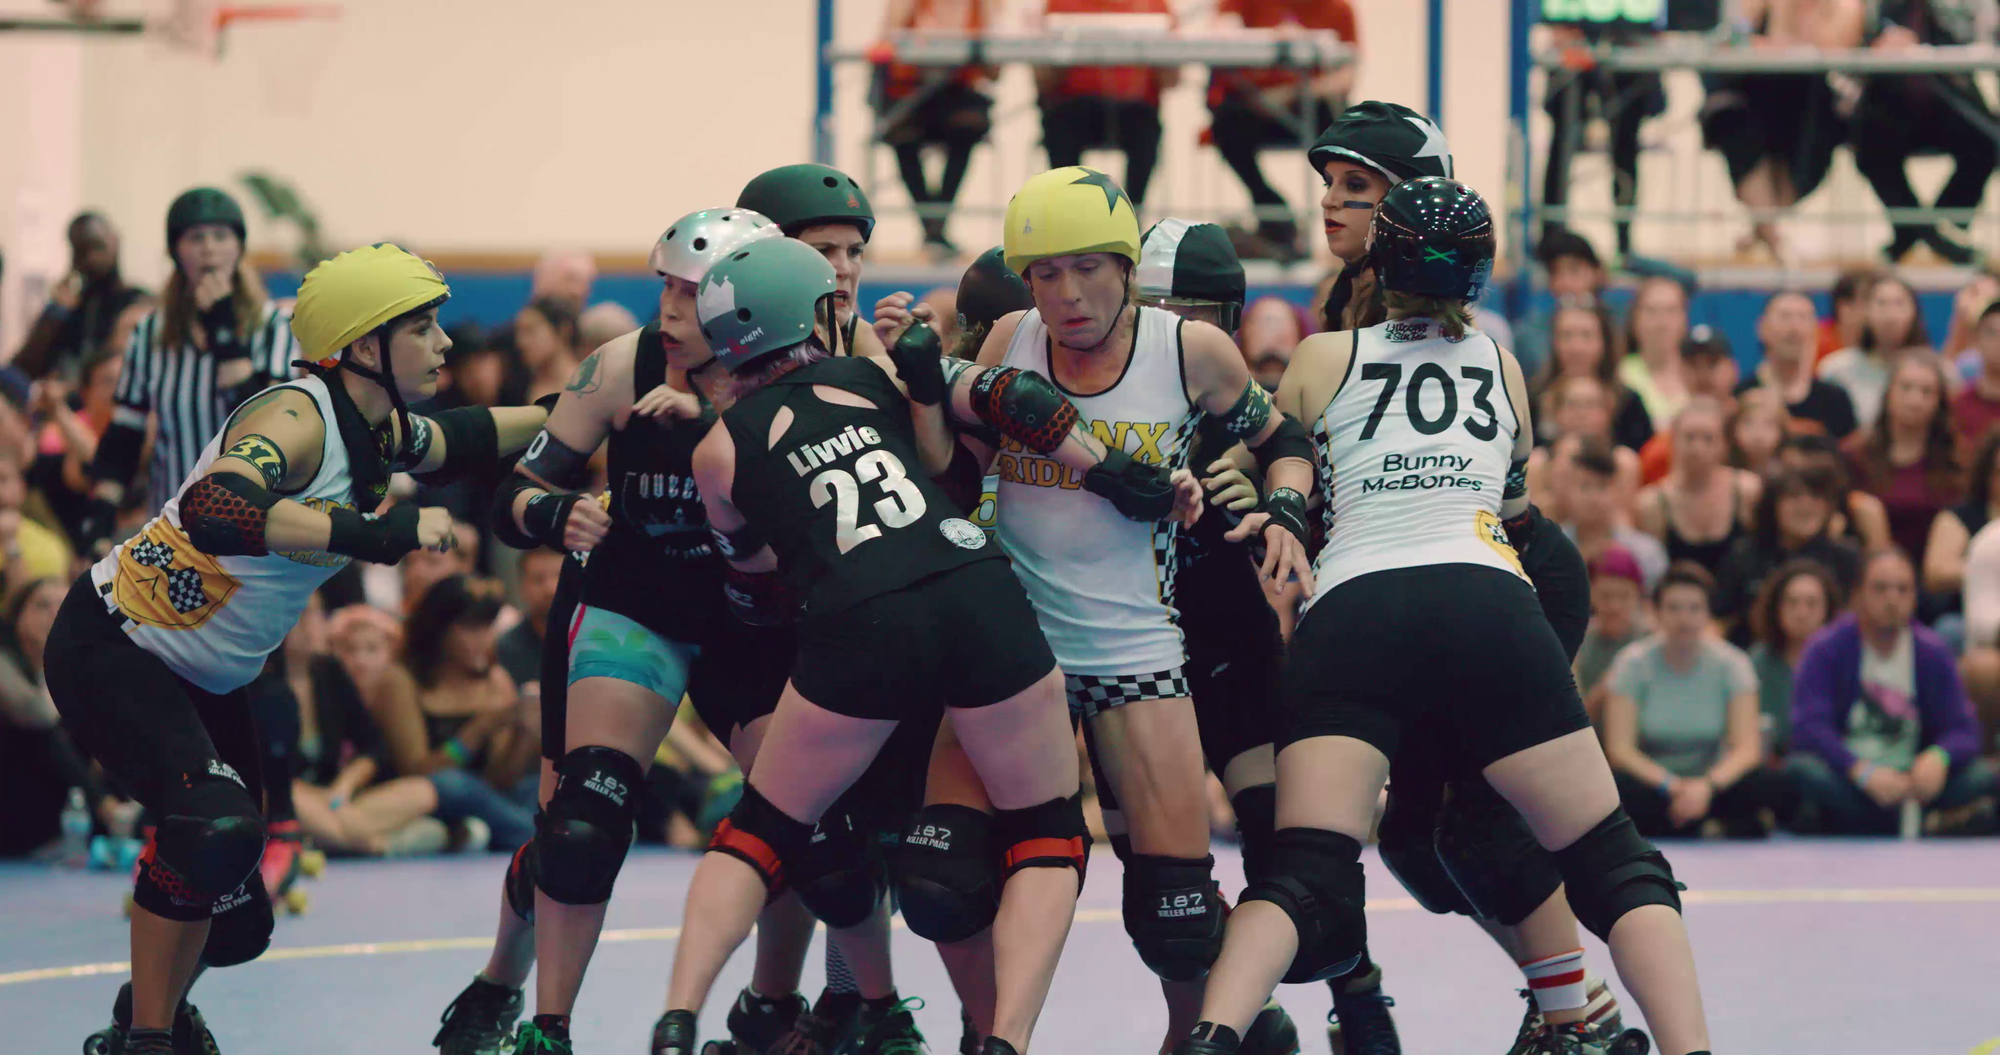 'Queens of Pain' Opens Brooklyn Film Festival With Documentary About Women's Lives and Roller Derby